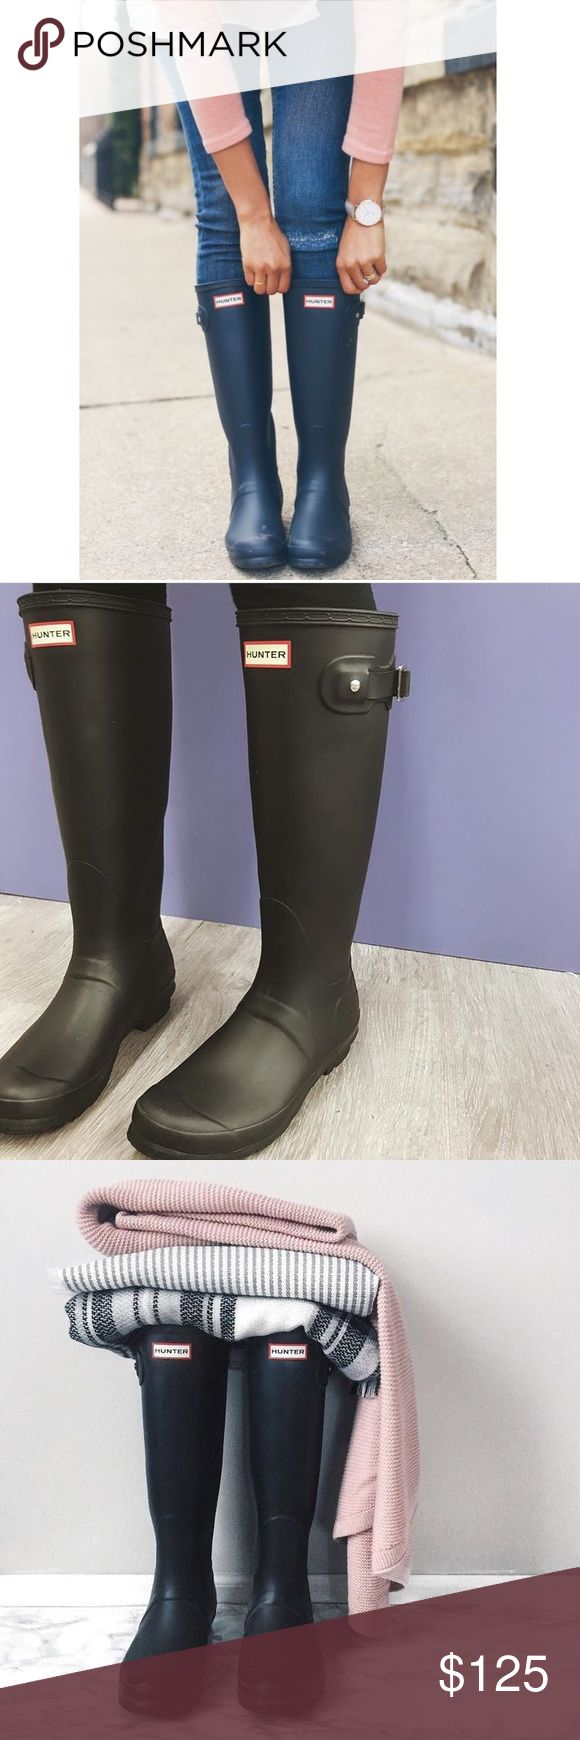 Hunter Original Rain Boots.Size US 8 EUR (39) The original Hunter wellies in a cool, matte finish and a convenient, foldable design. A buckled strap accents the shaft, while soft nylon lining and a cushioned footbed offer a comfortable fit. Great condition! Worn just once. Hunter Boots Shoes Winter & Rain Boots